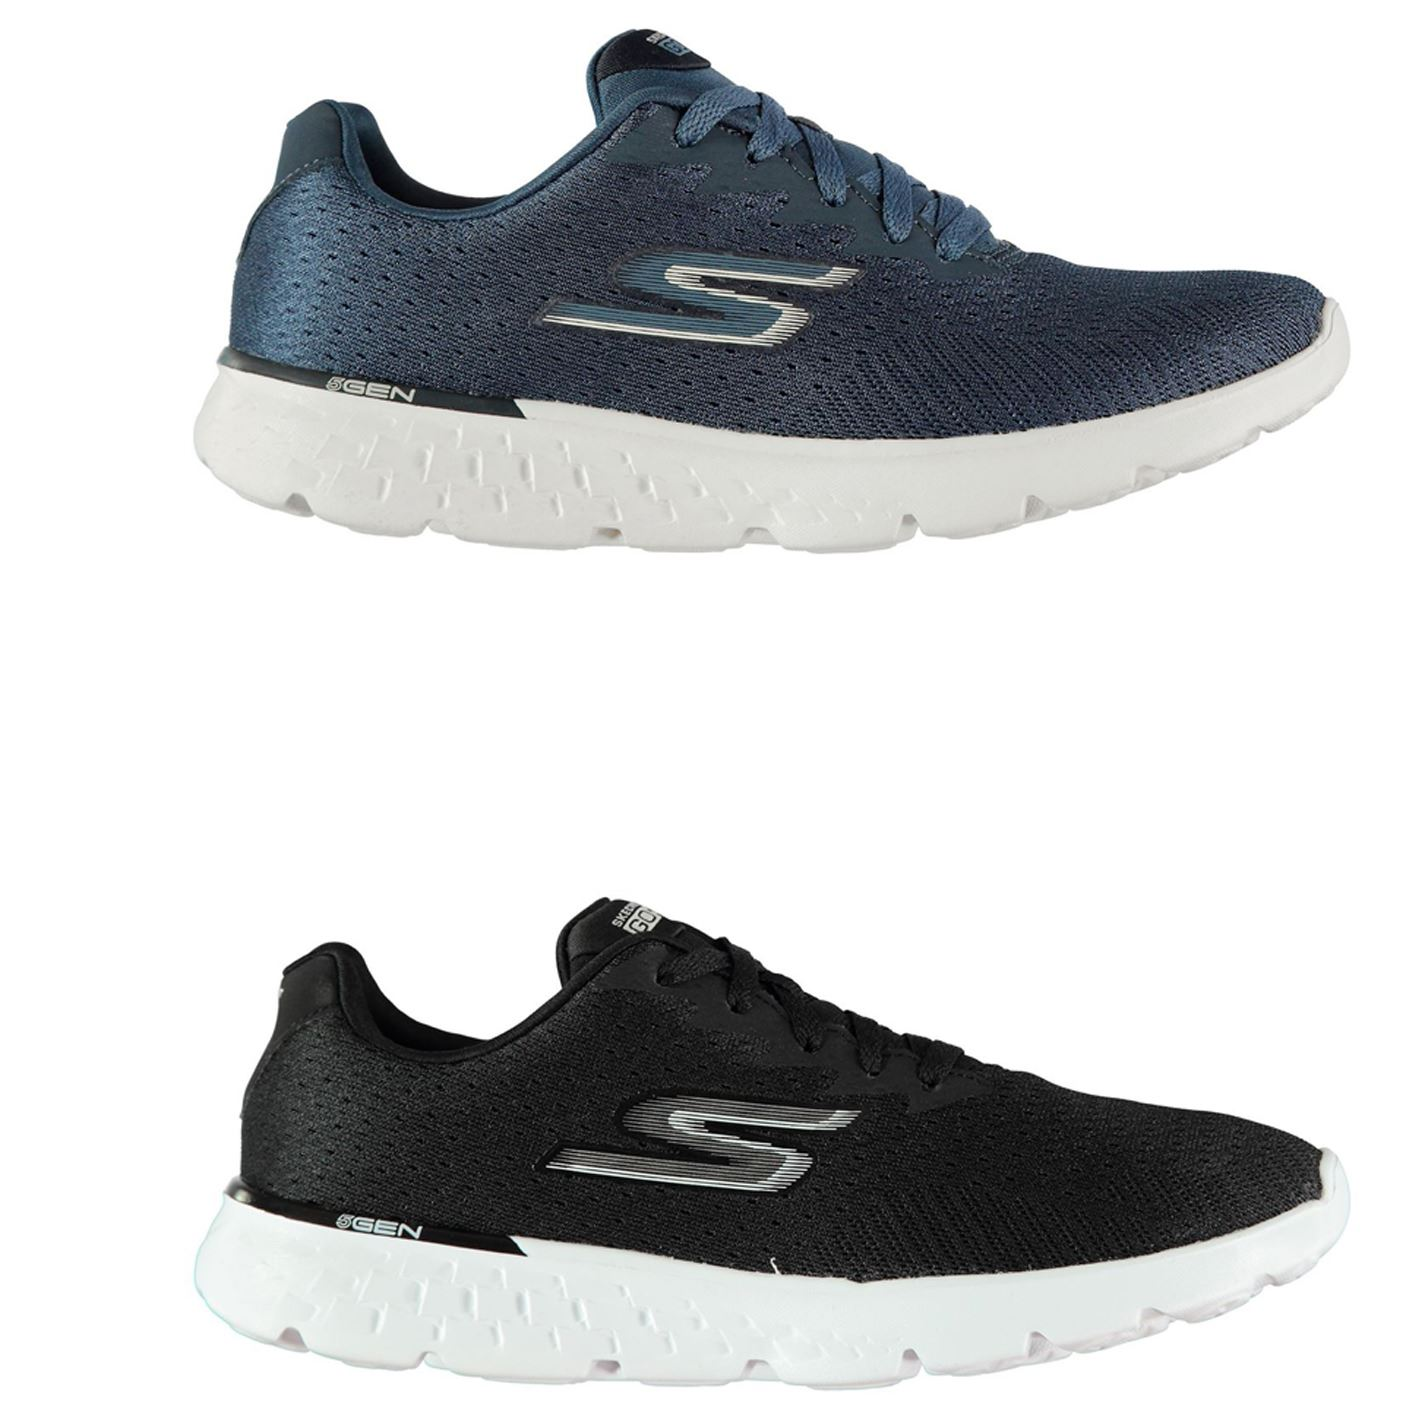 Details about Skechers Go Run 400 Trainers Ladies Shoes Womens Footwear